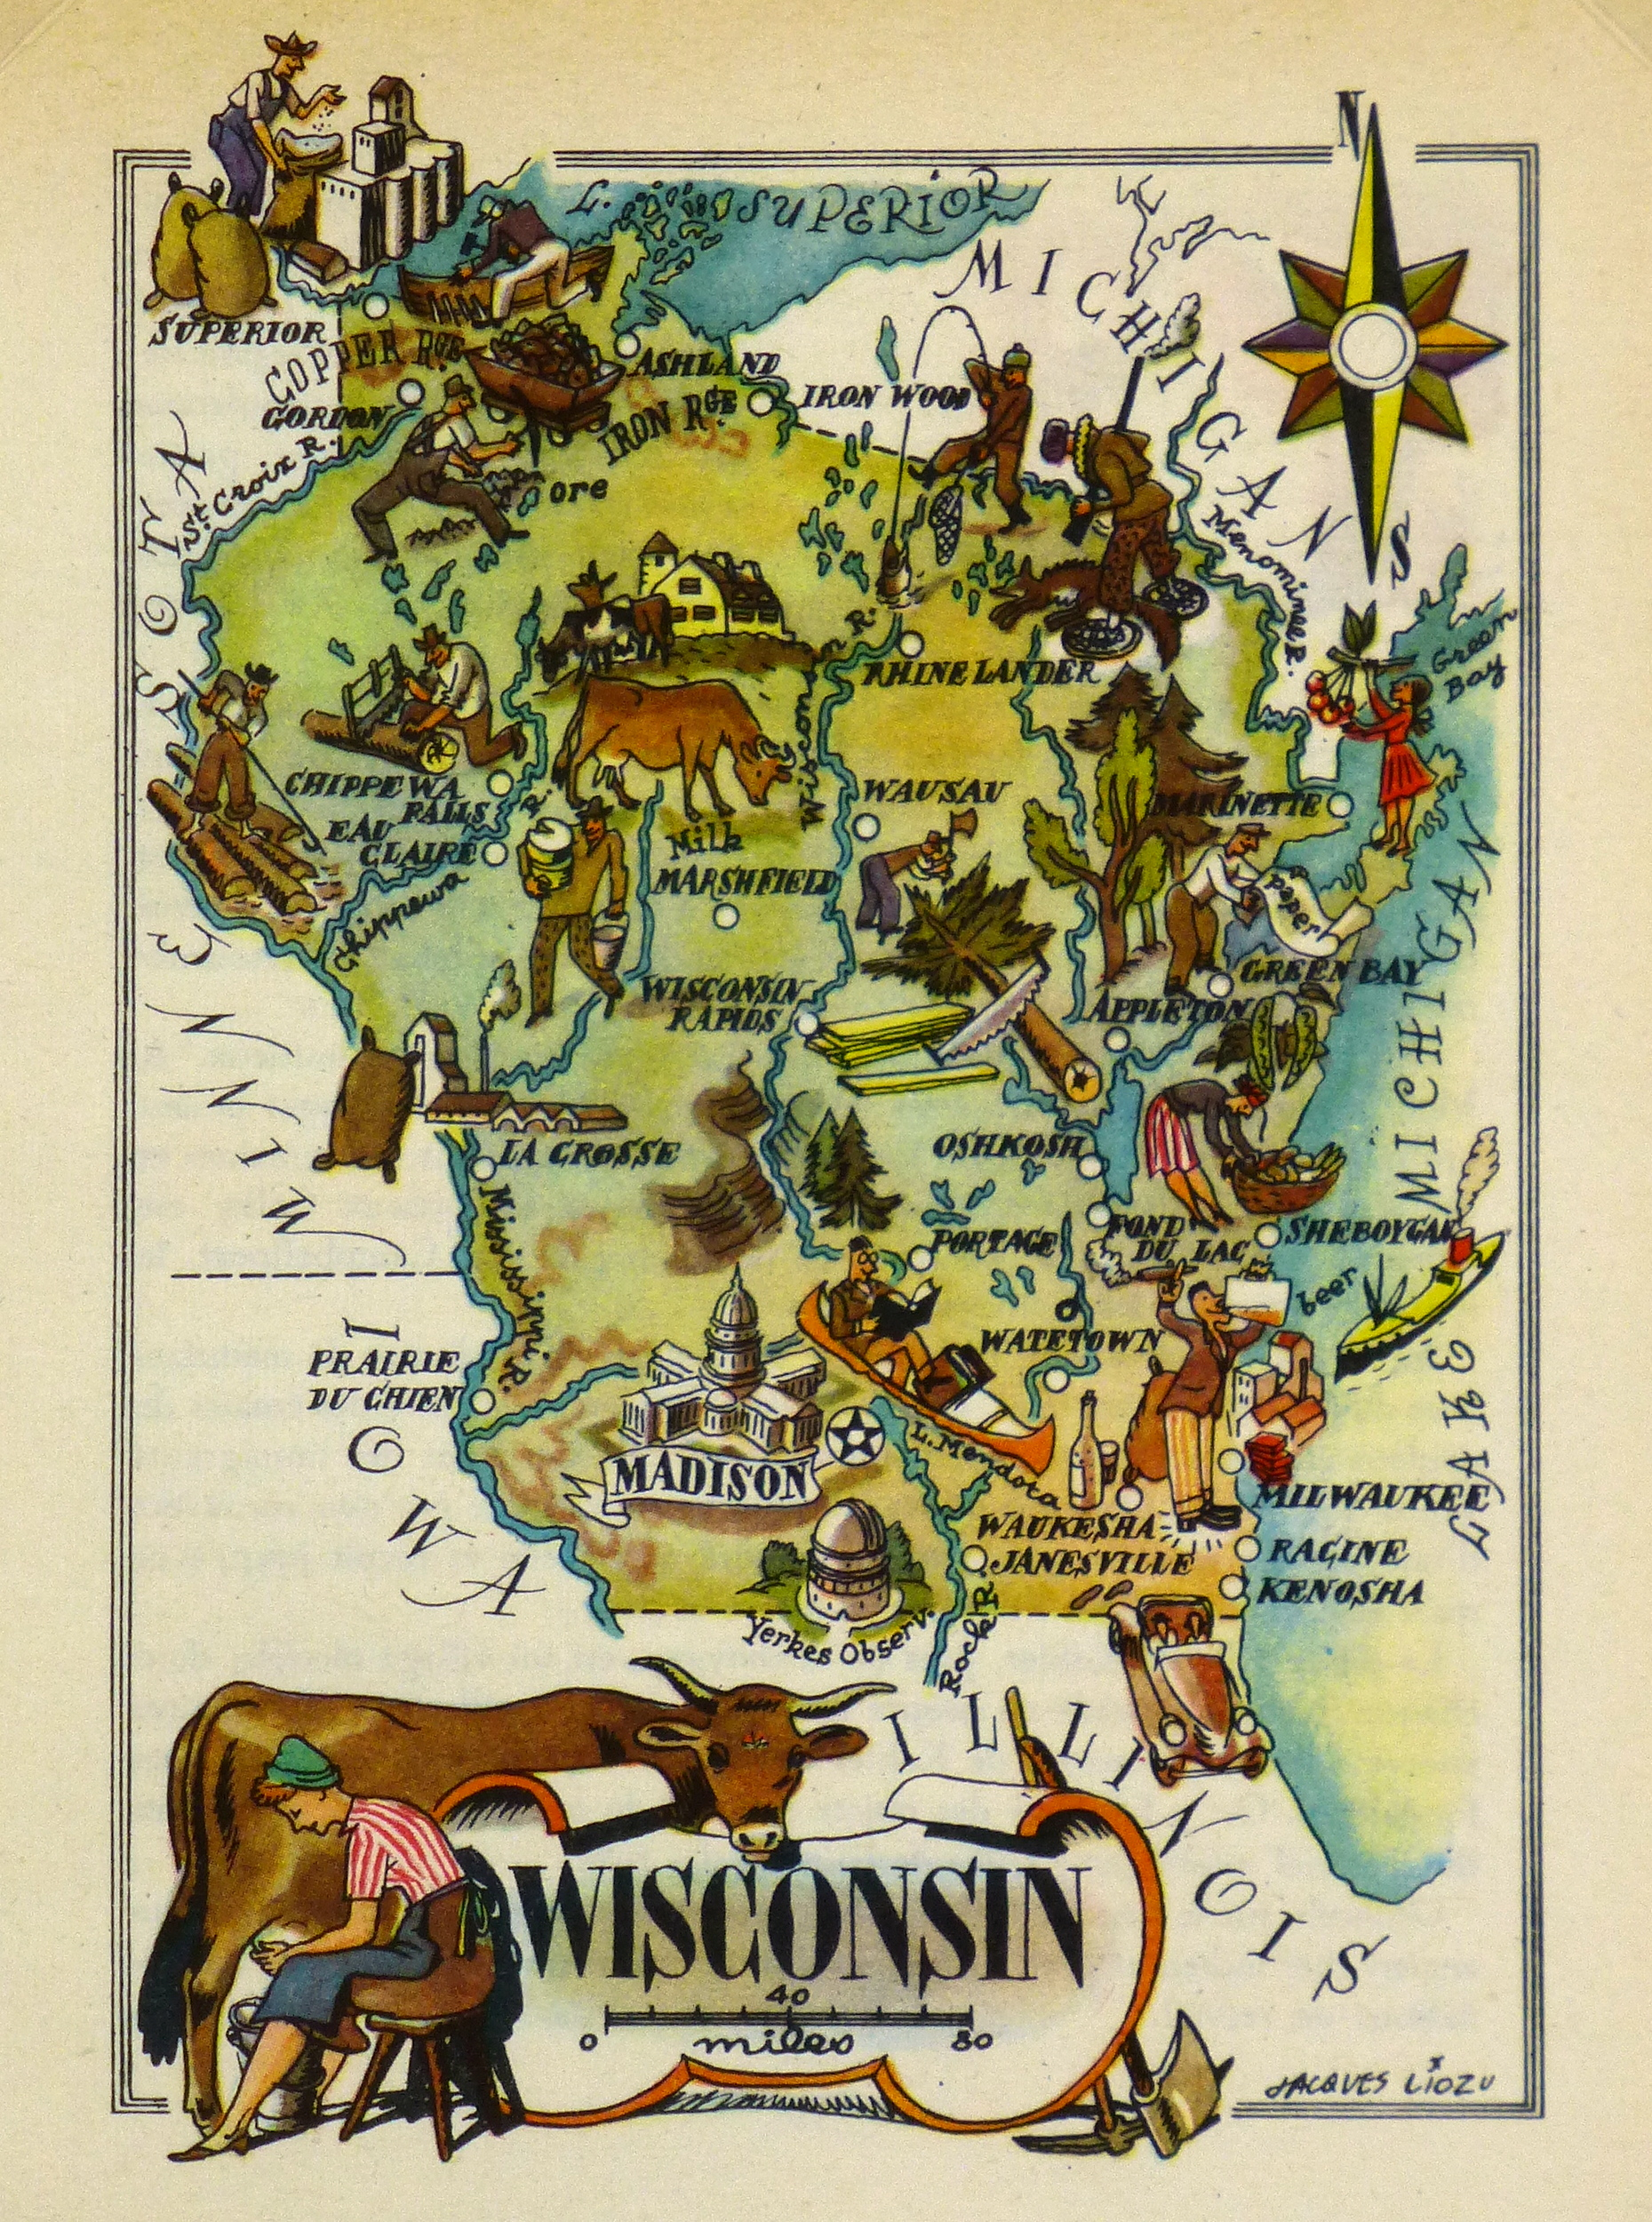 Wisconsin Pictorial Map, 1946-main-6236K